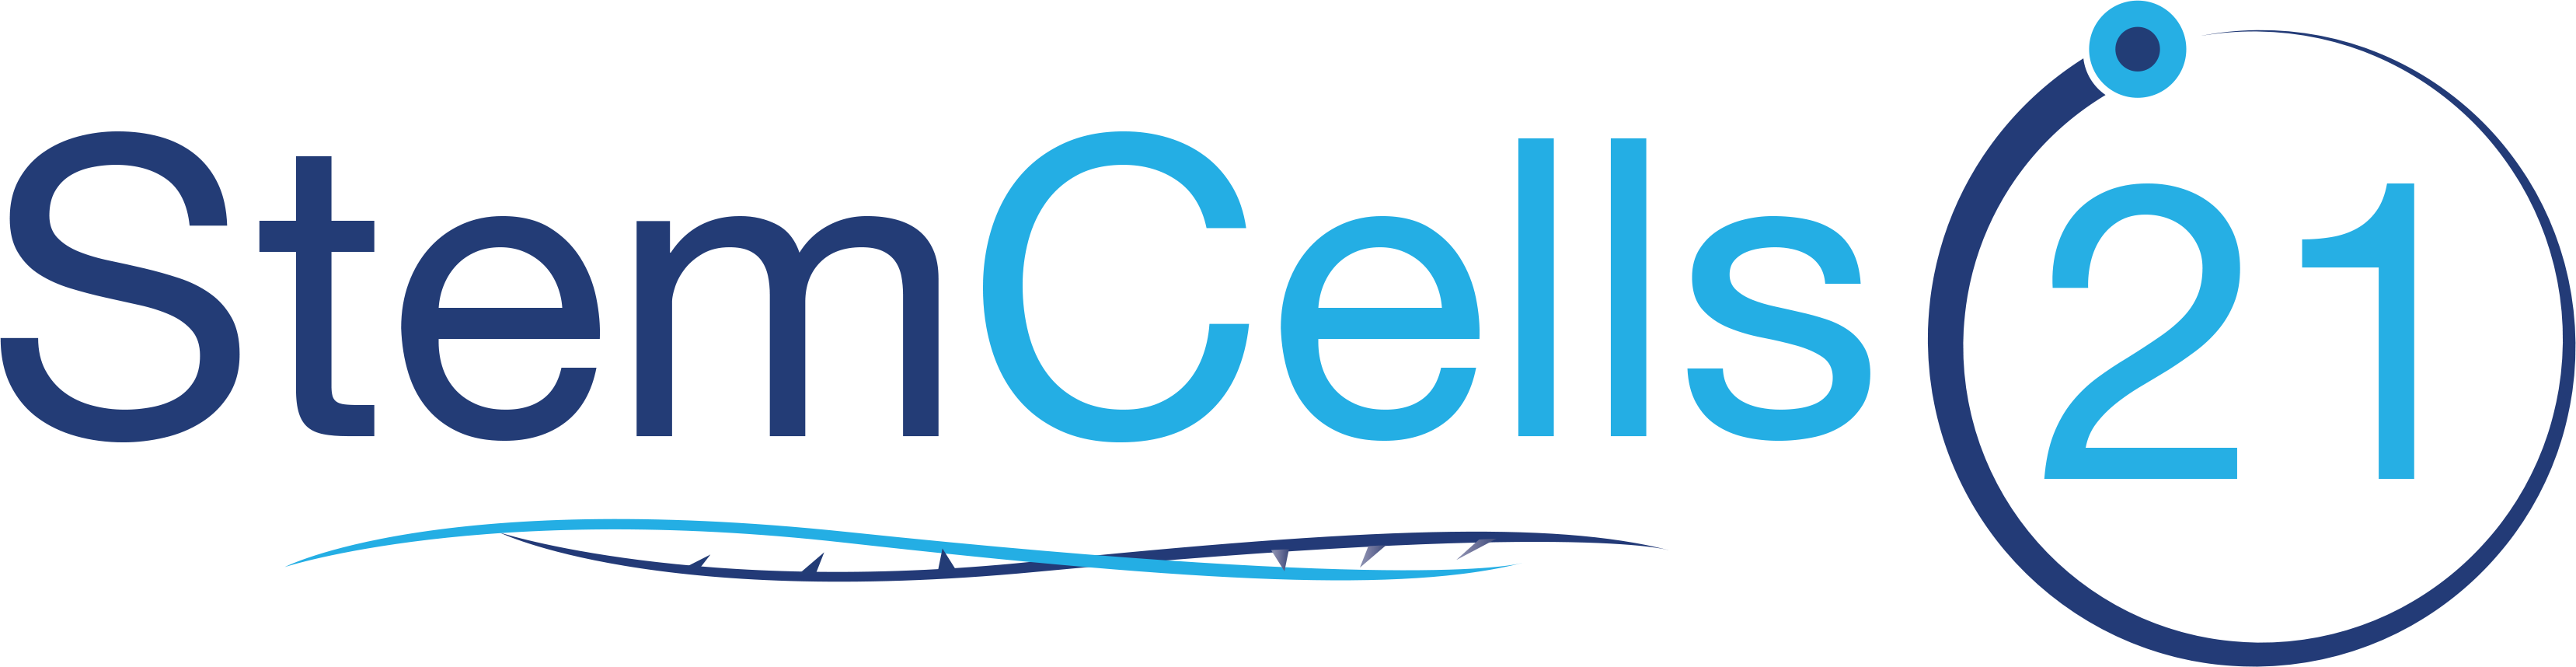 Stem Cells 21 In Revolutionary Stem Cell Therapy Program